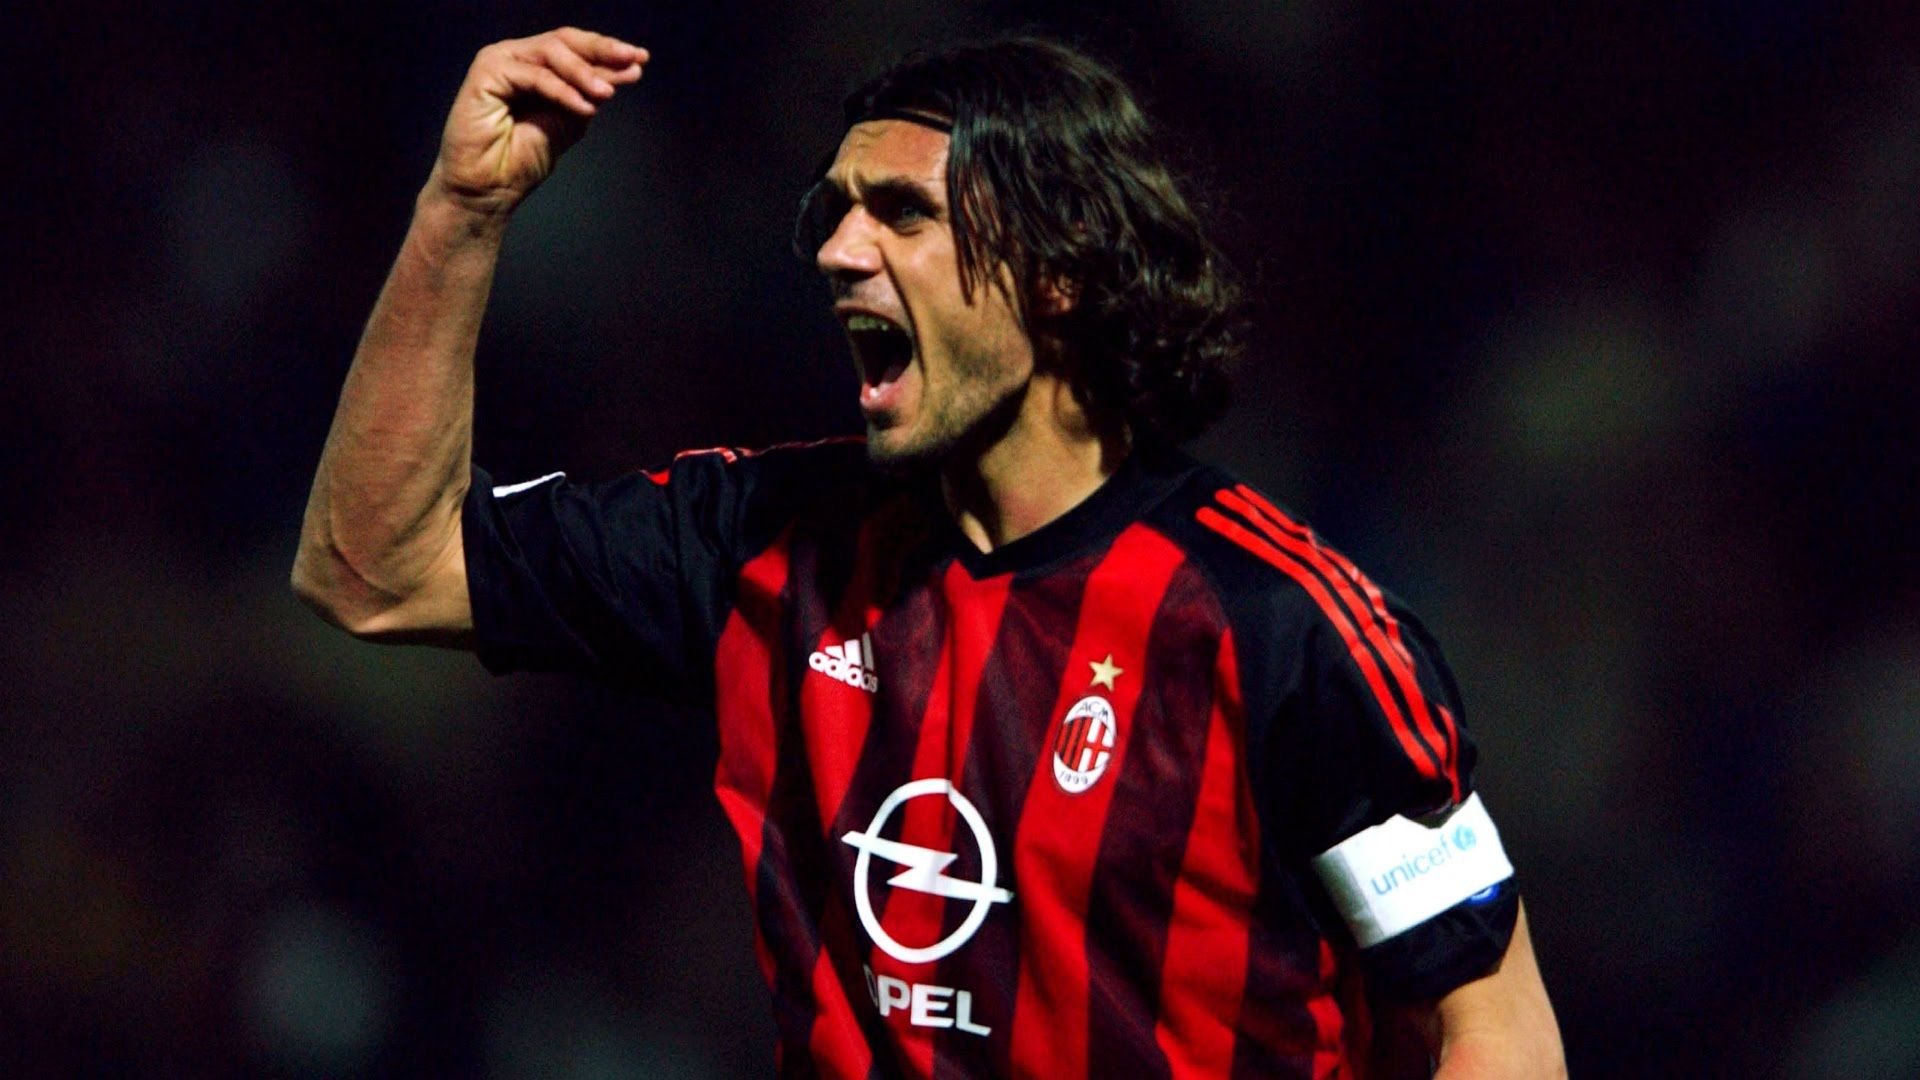 paolo maldini 2012 hd - photo #15